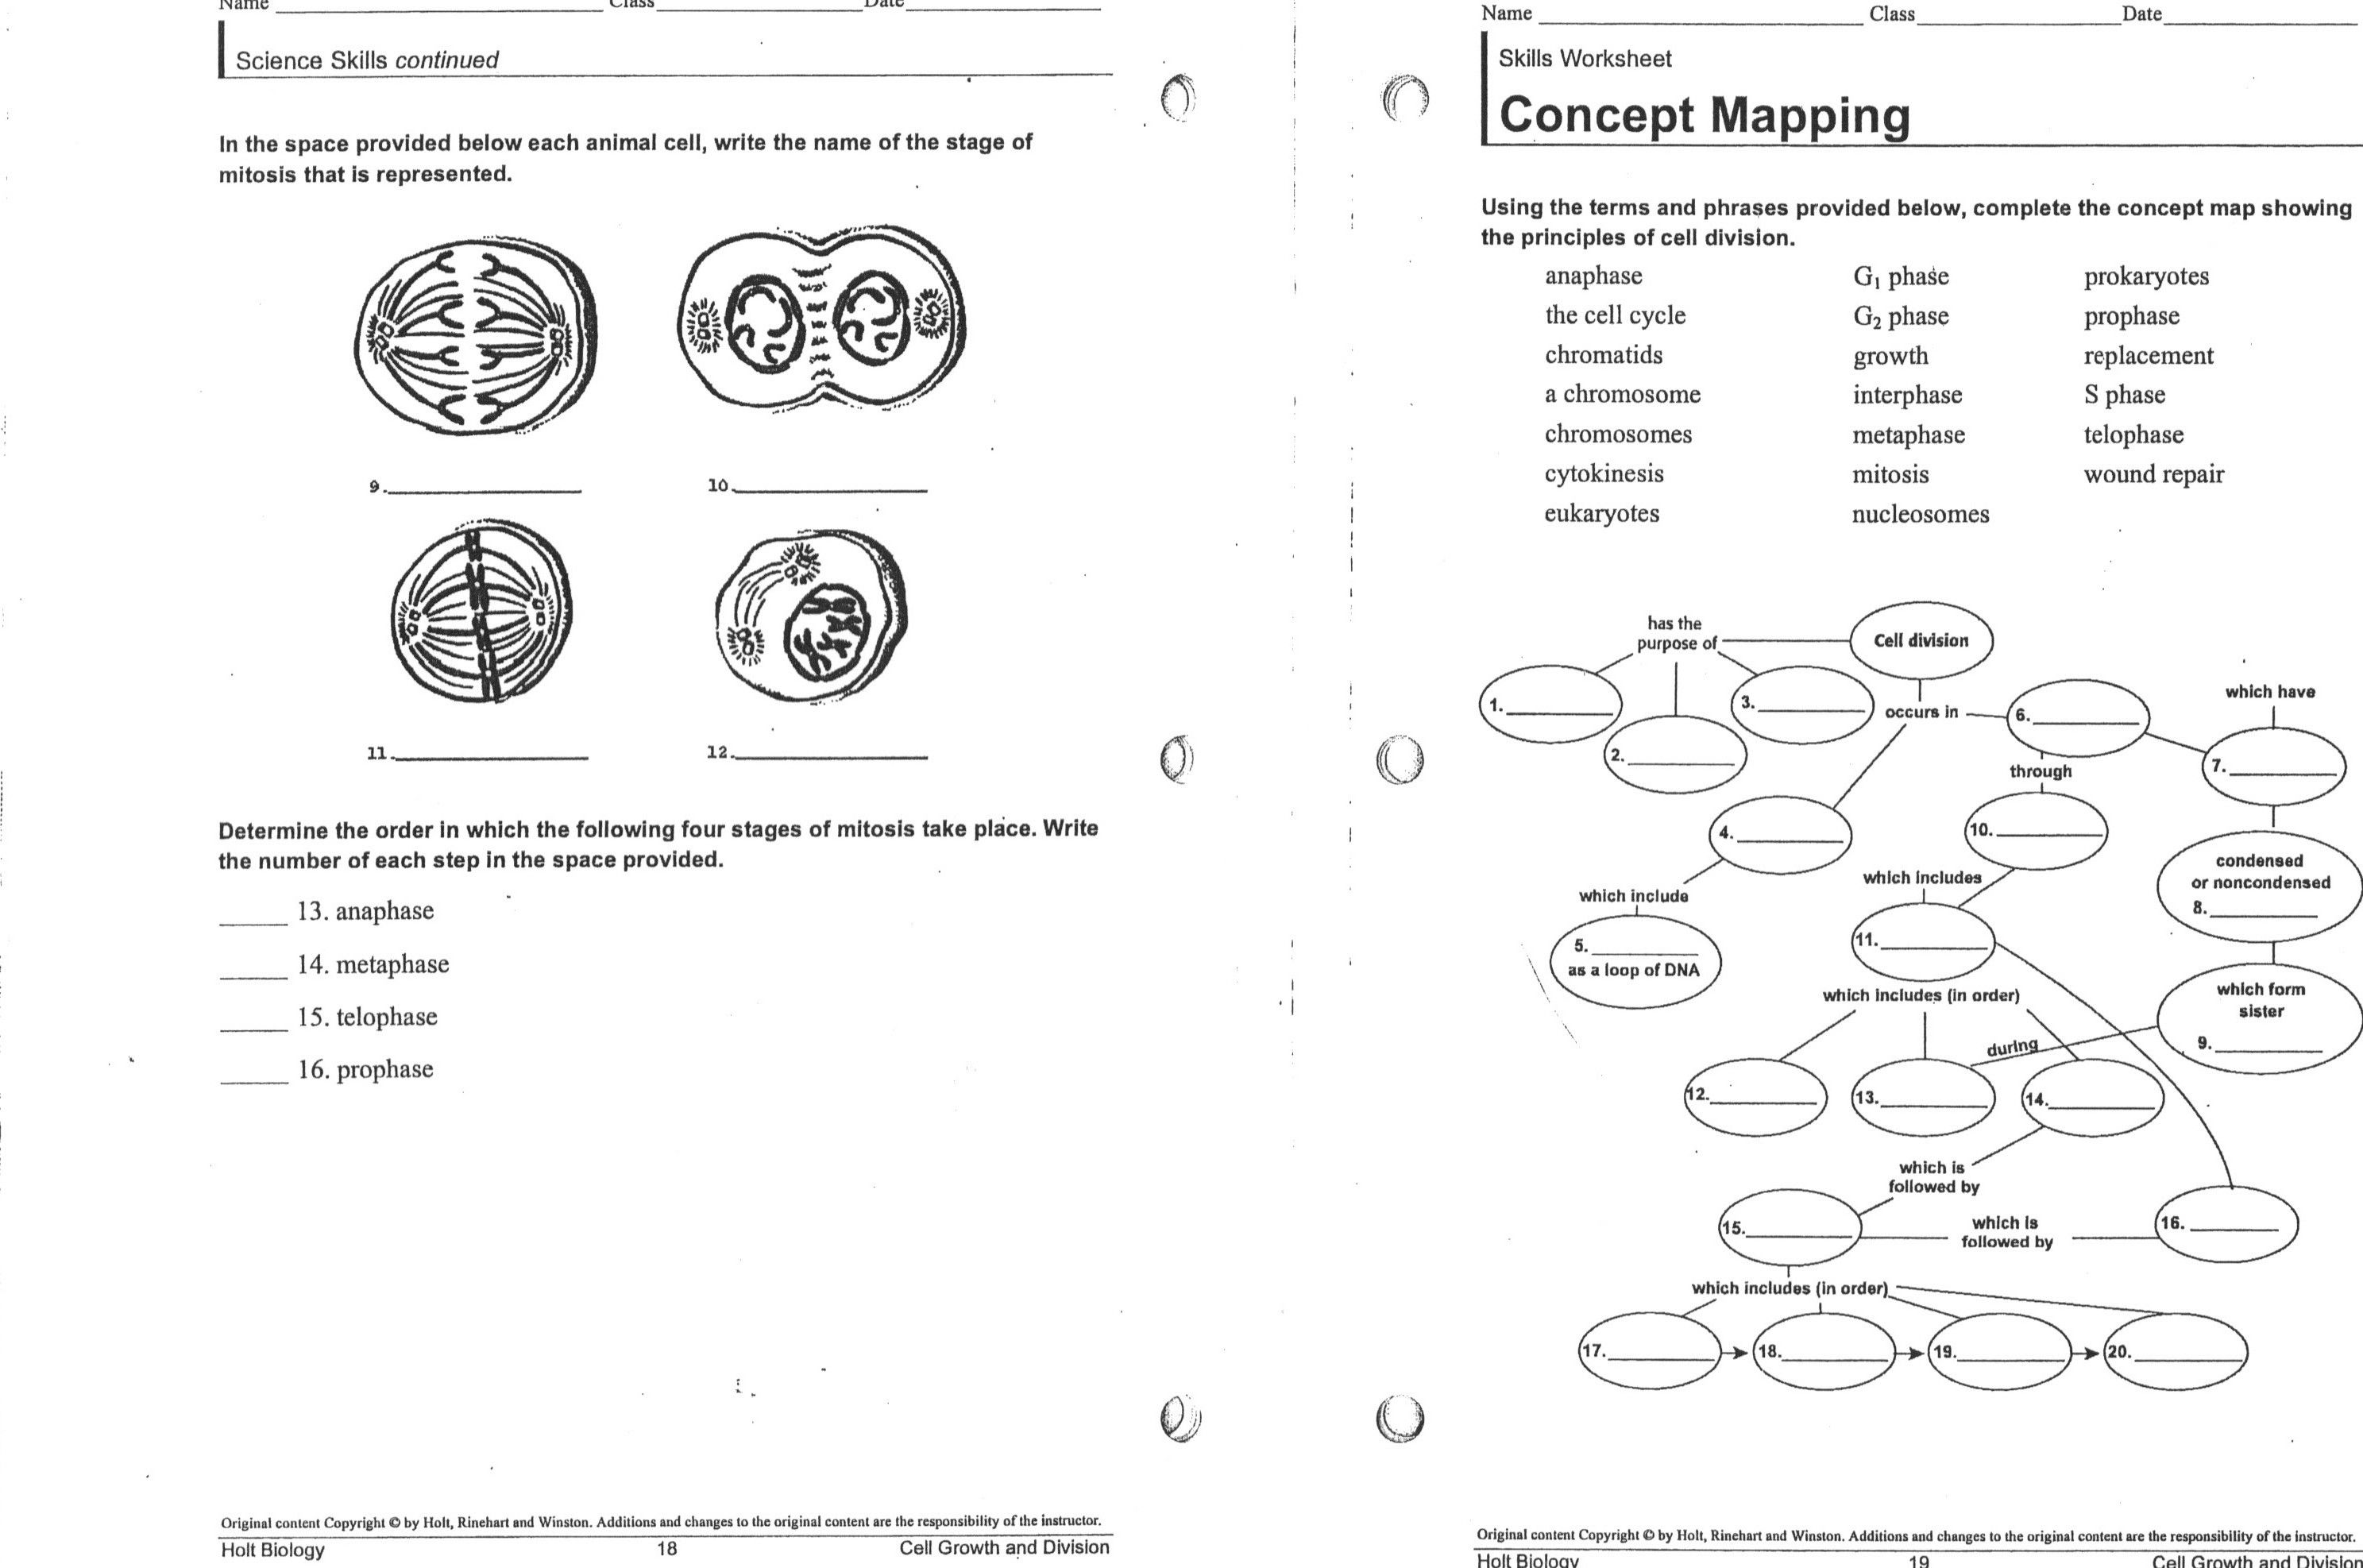 meiosis stages worksheet Bing images Mitosis, Meiosis